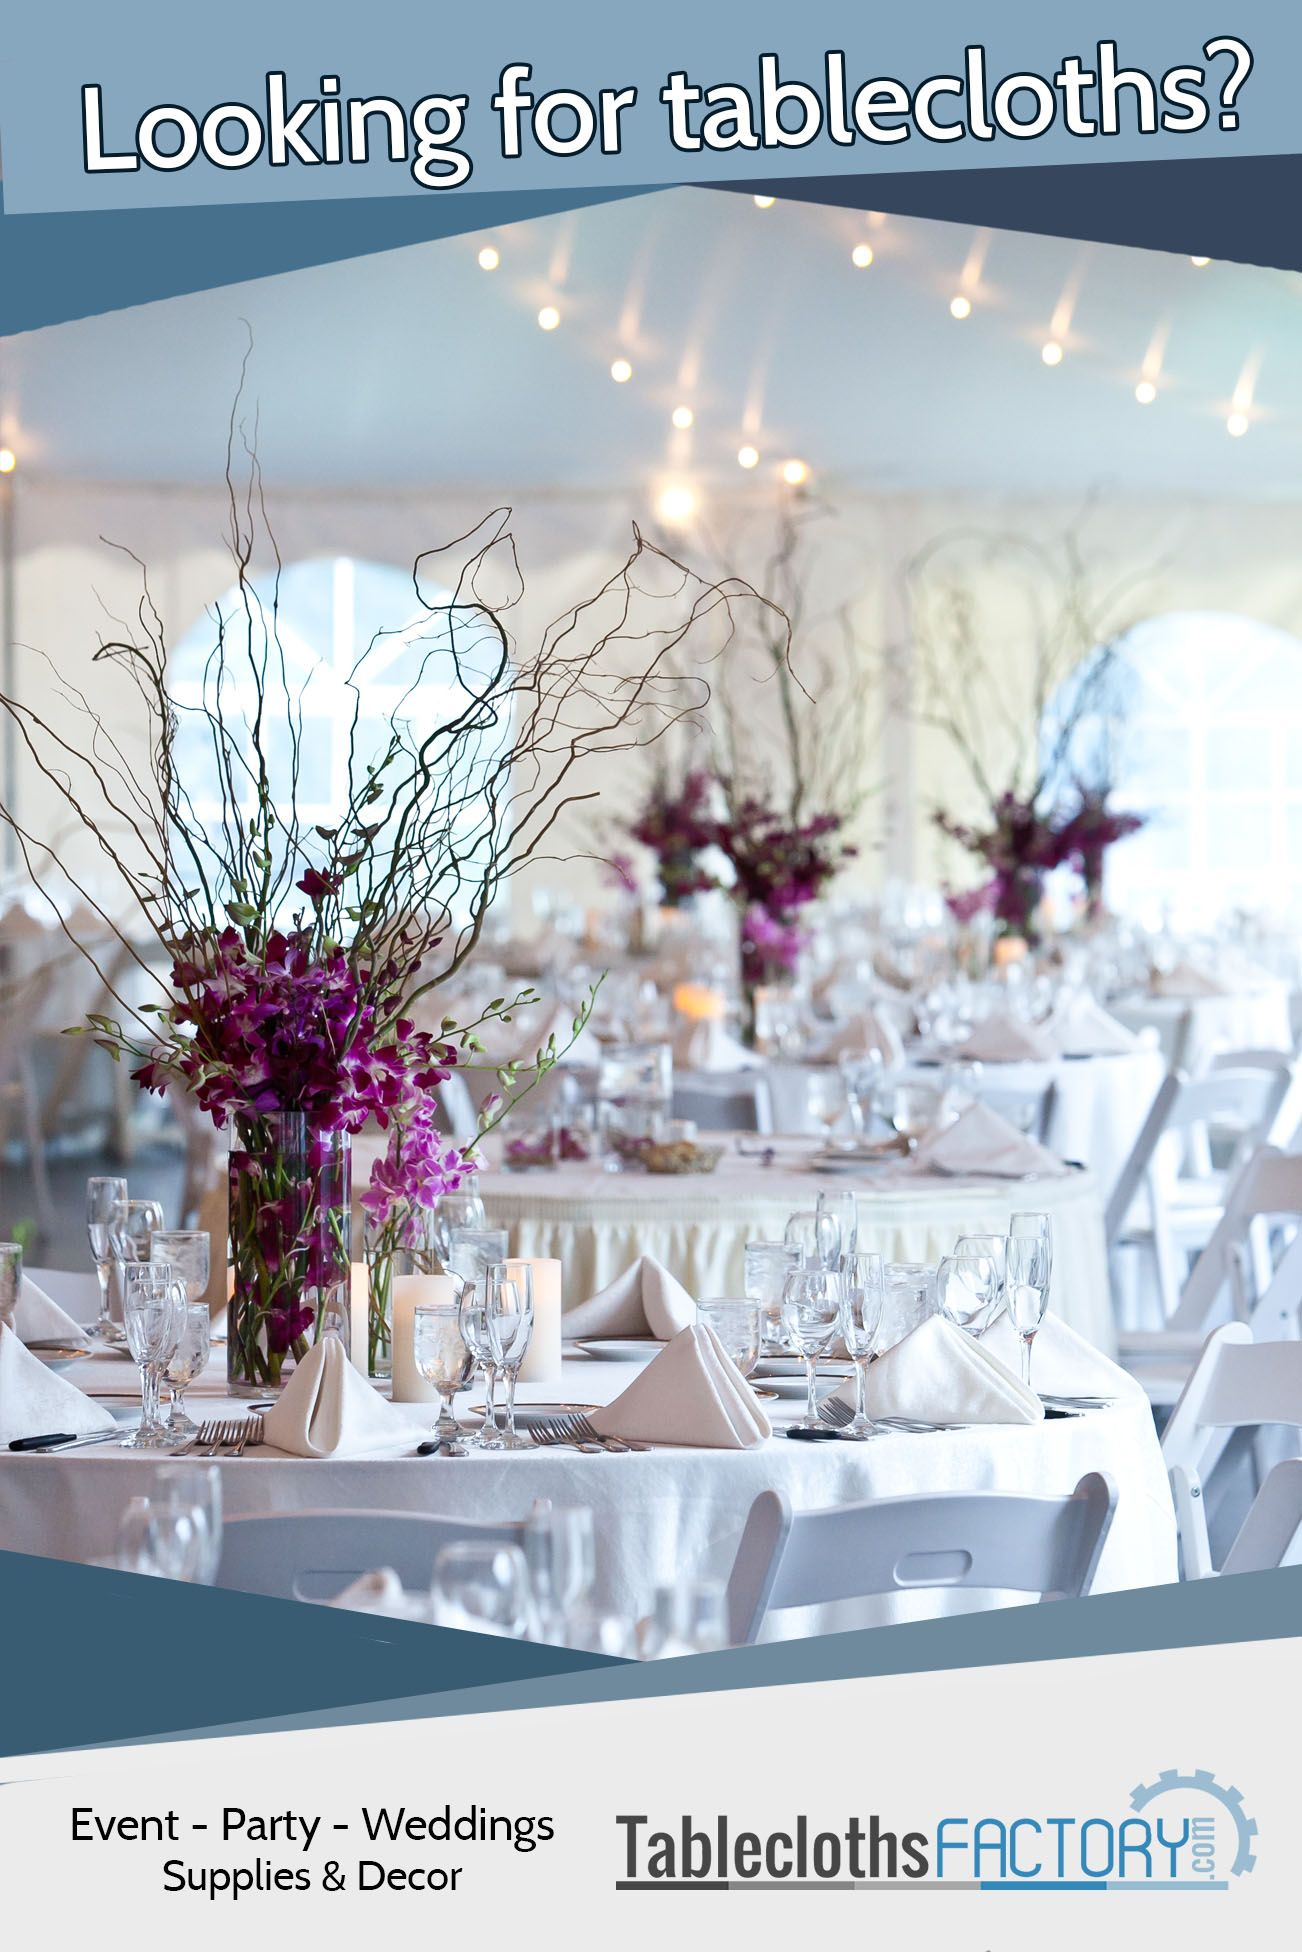 Whenever Affordable Table Linens Are Needed Look No Further Than